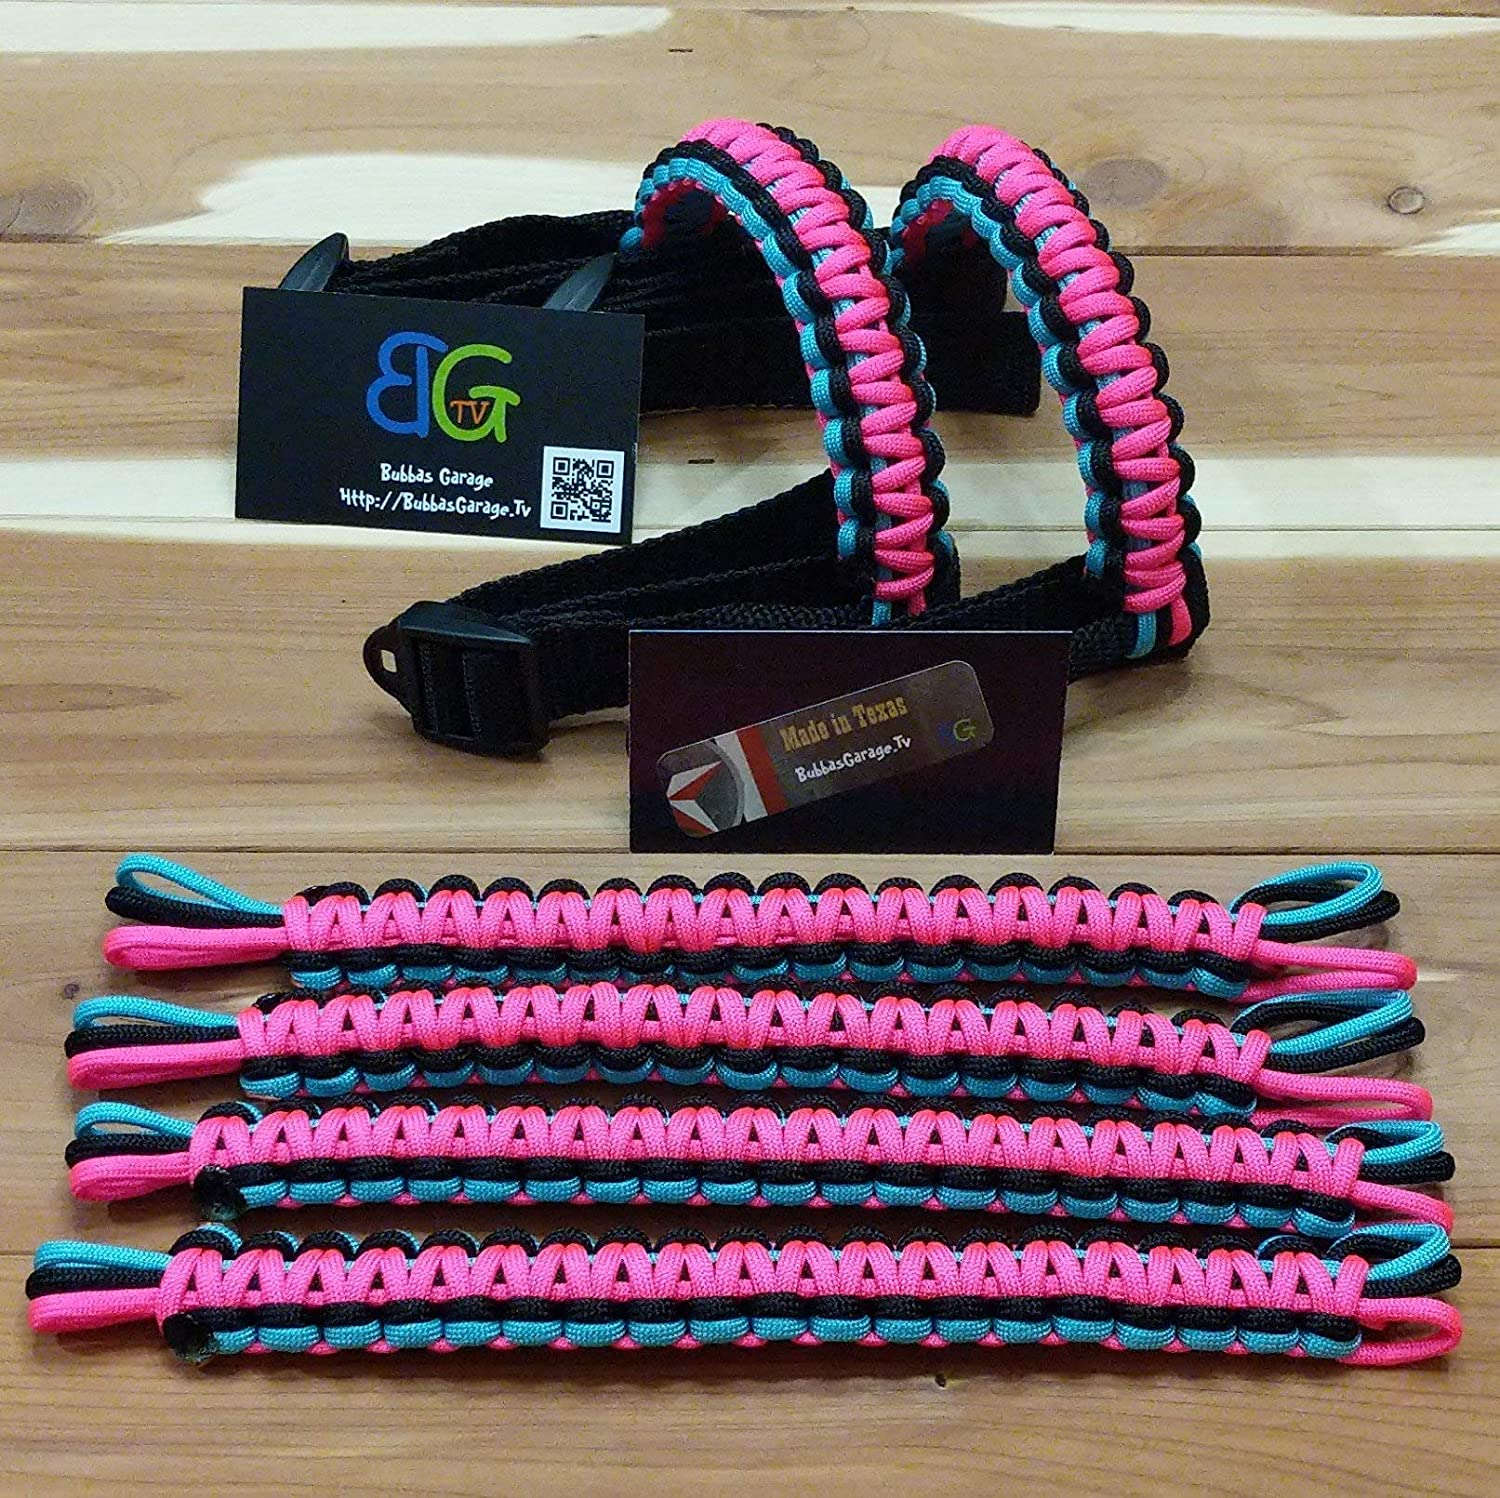 Paracord Jeep Wrangler Grab Handles - Turquoise/Black & Hot Pink - Pick your pairs